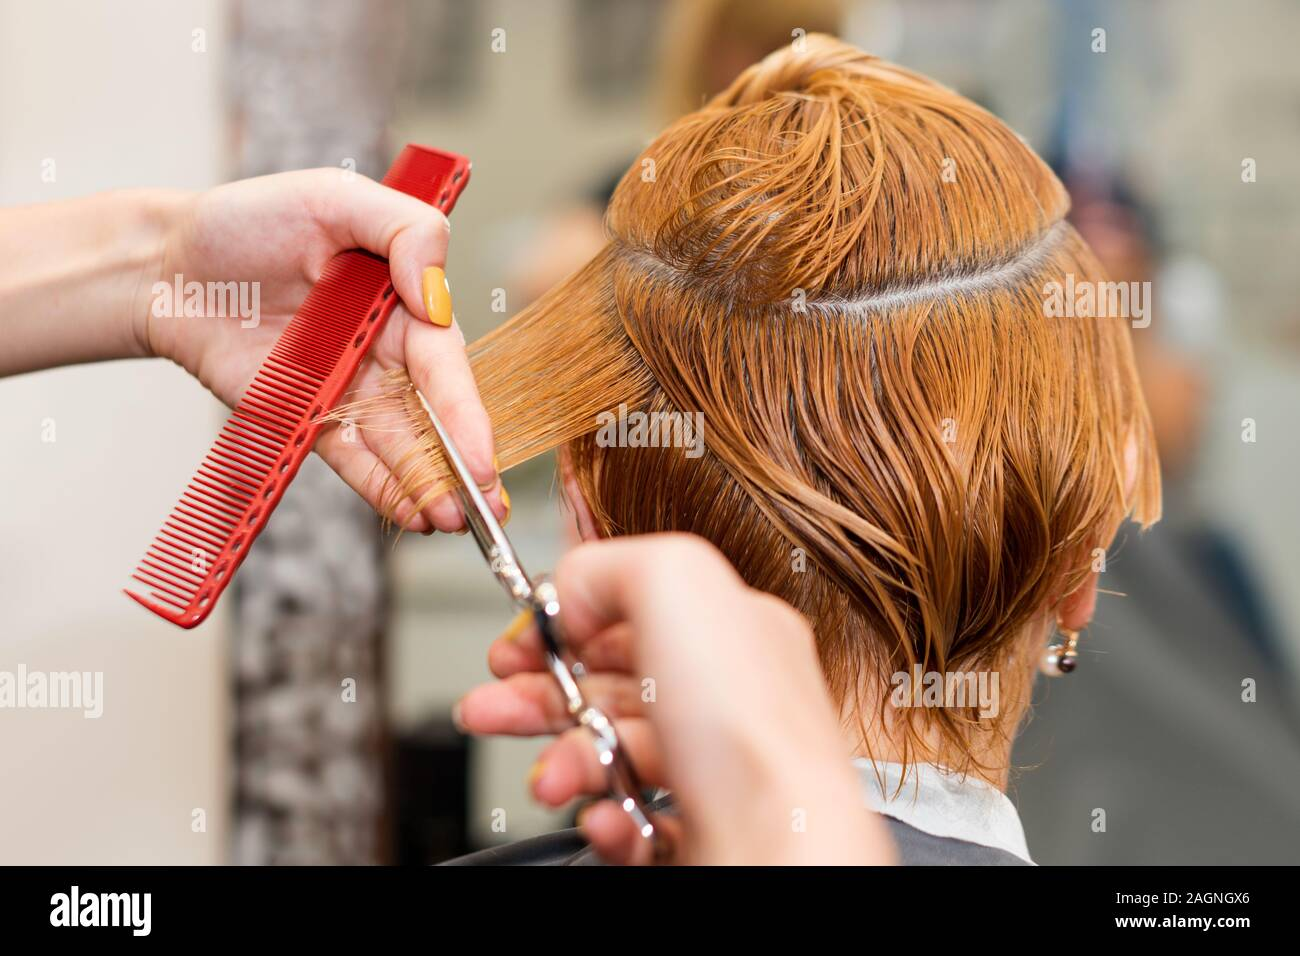 Woman getting a new haircut. Female hairstylist cutting hair with